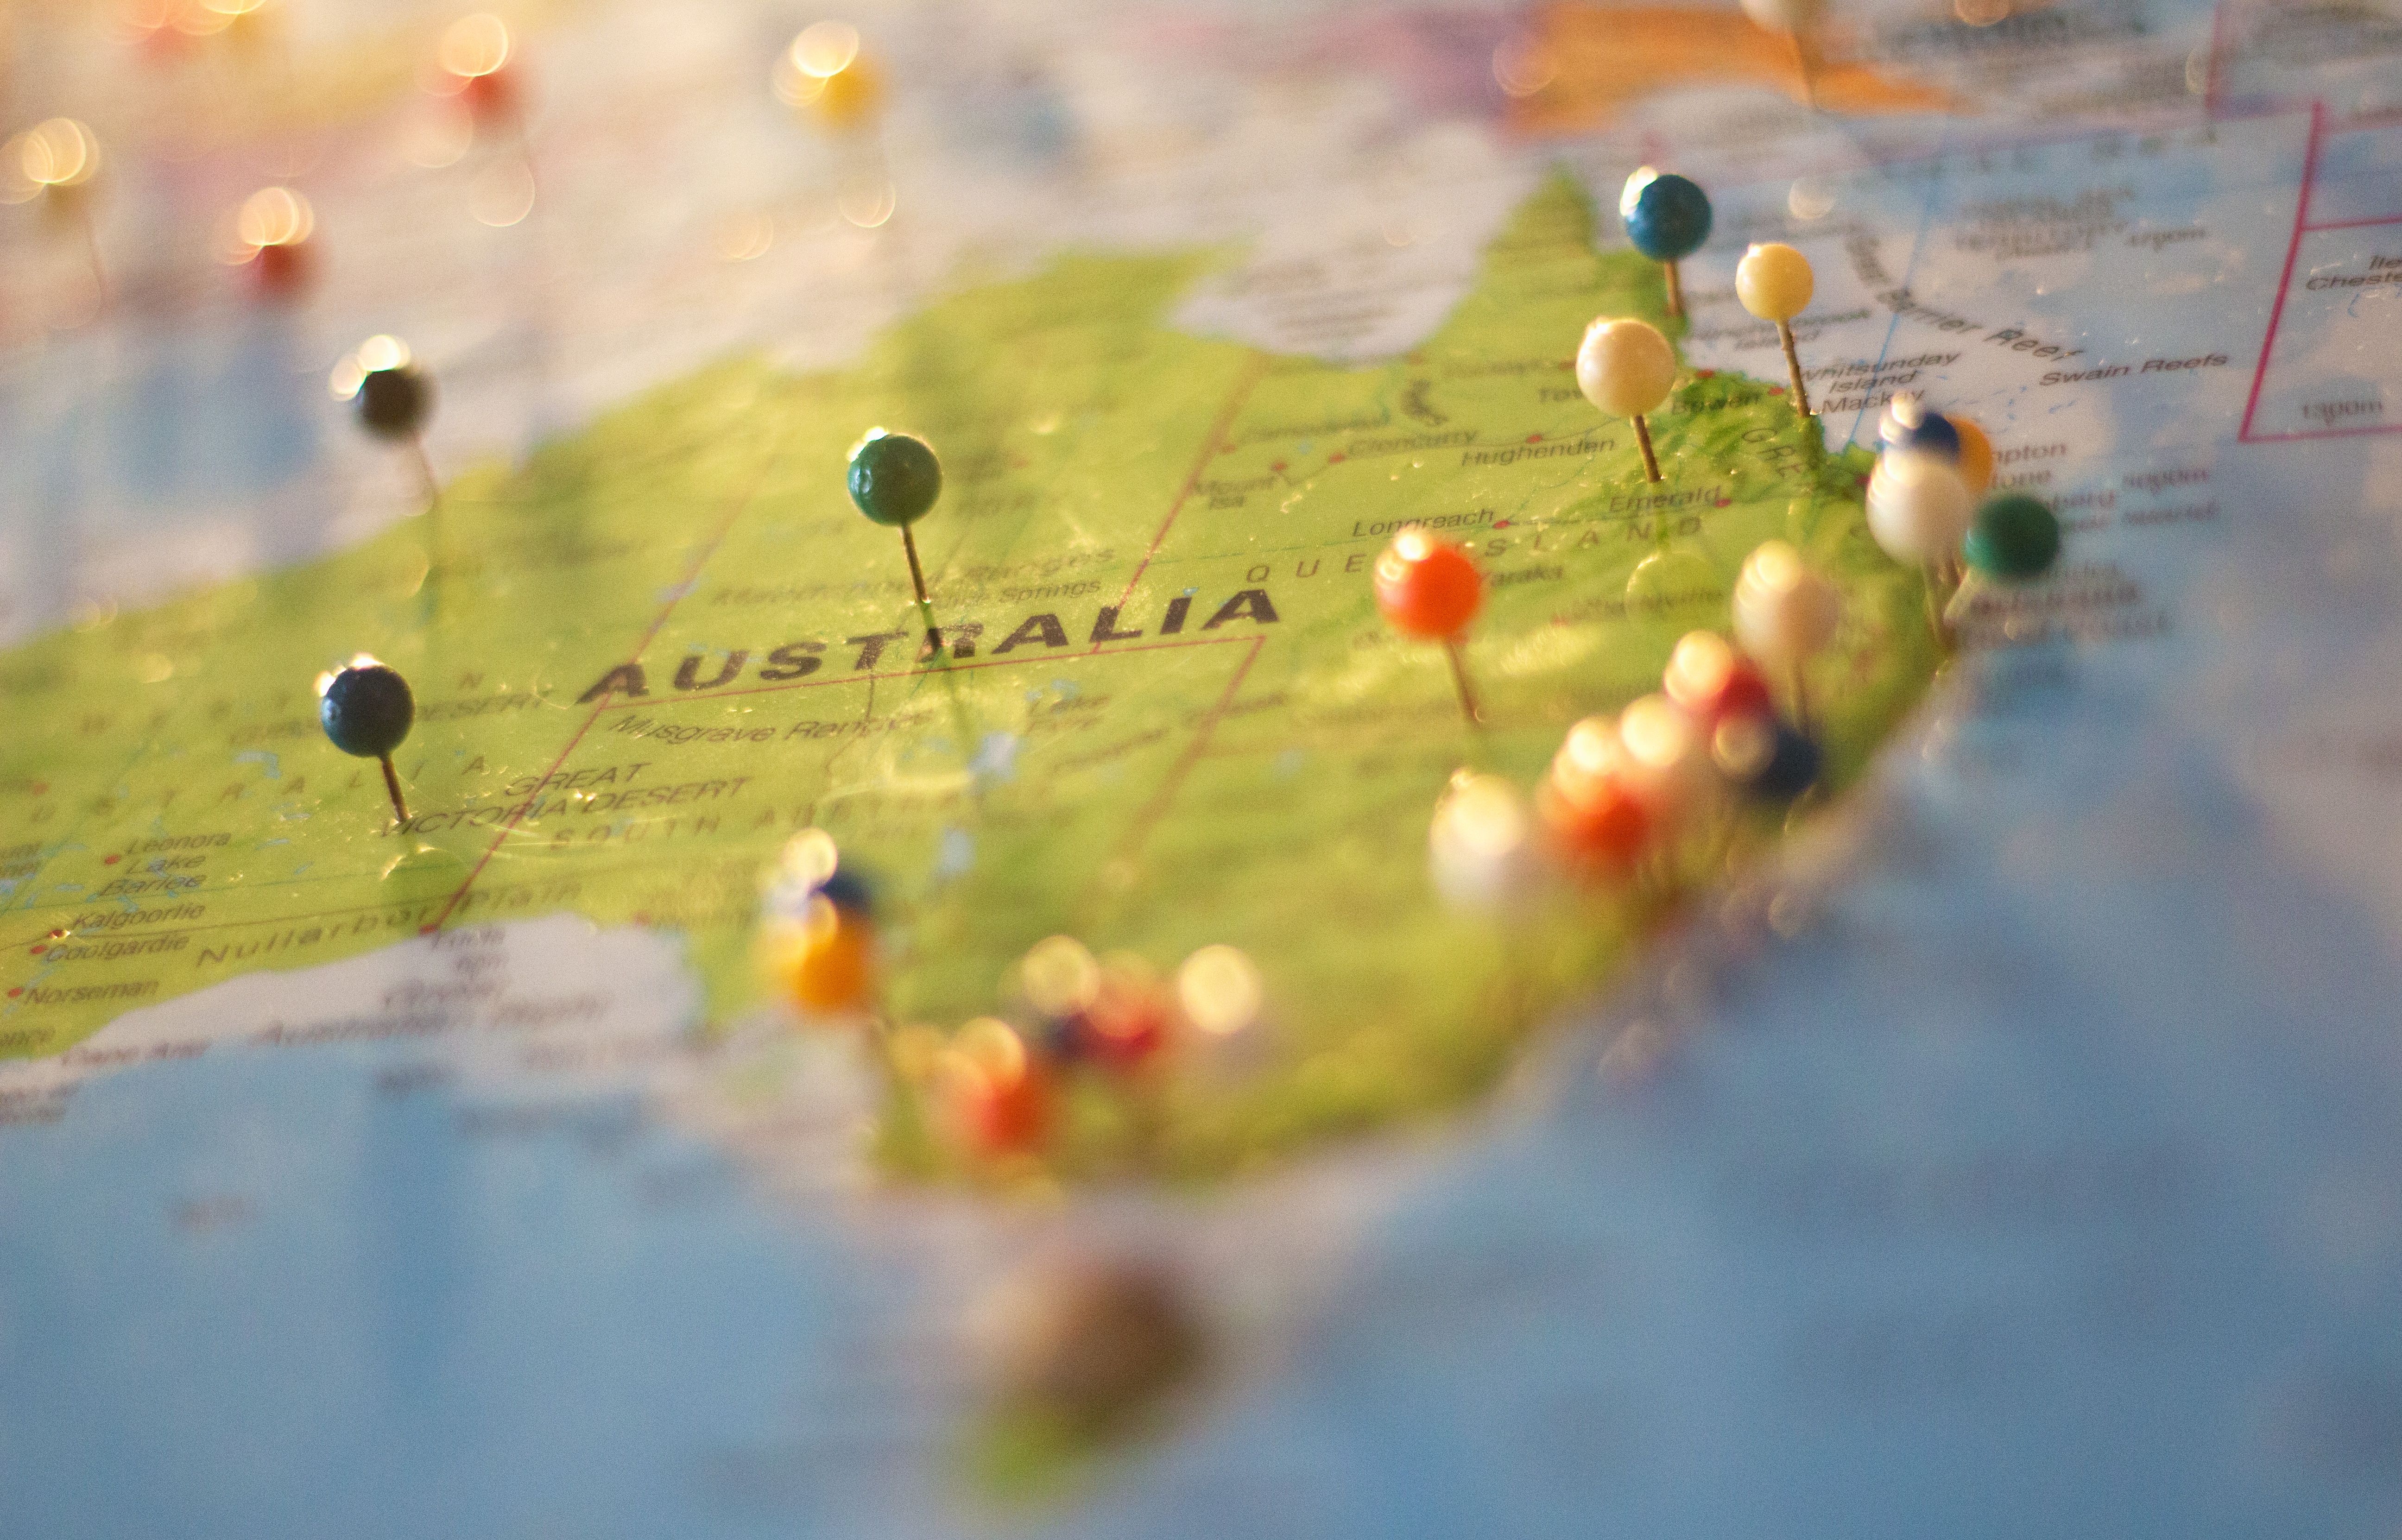 """So close, but yet so far. A private Chinese company was temporarily banned from its deal with S. Kidman & Company, Australia's largest land owner. The government is reviewing the deal, citing """"national interests"""". (Stock photo provided by Pexels)"""